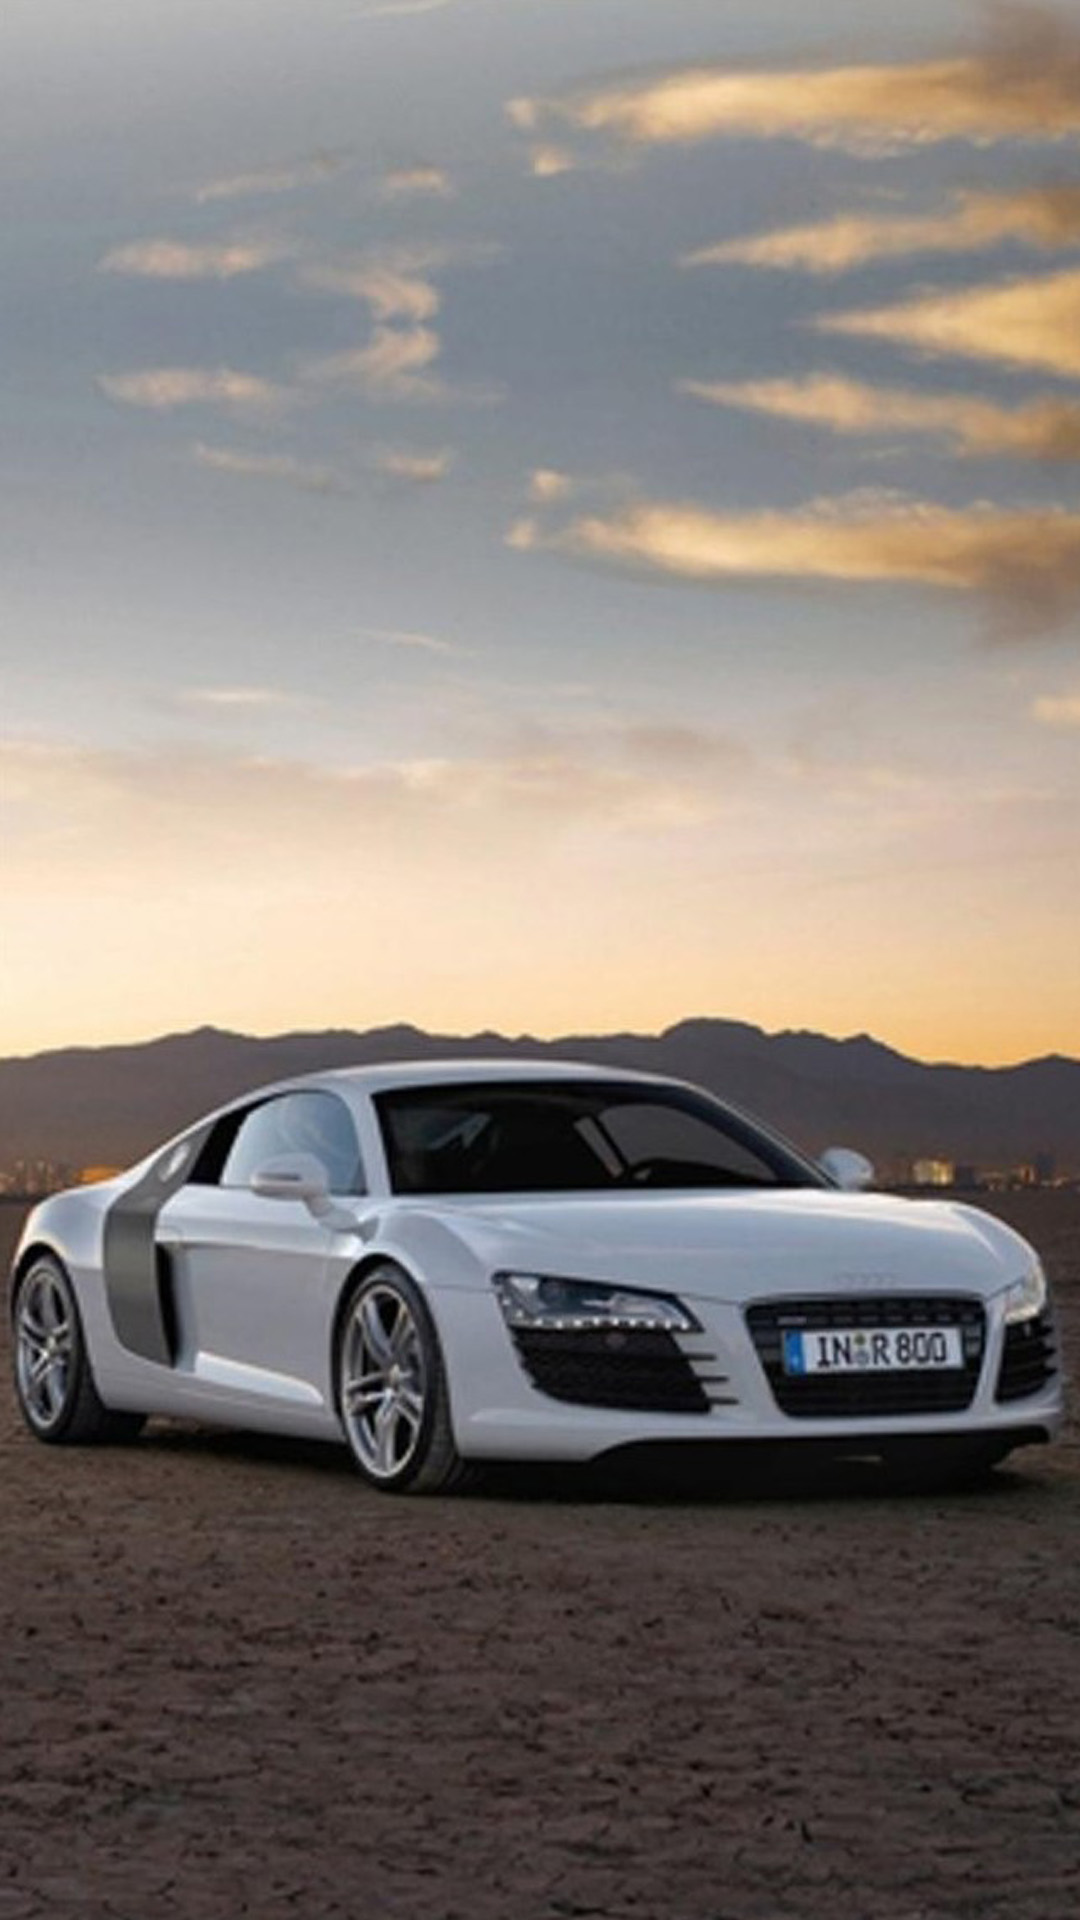 Audi R8 Sunset Android Wallpaper Android Hd Wallpapers